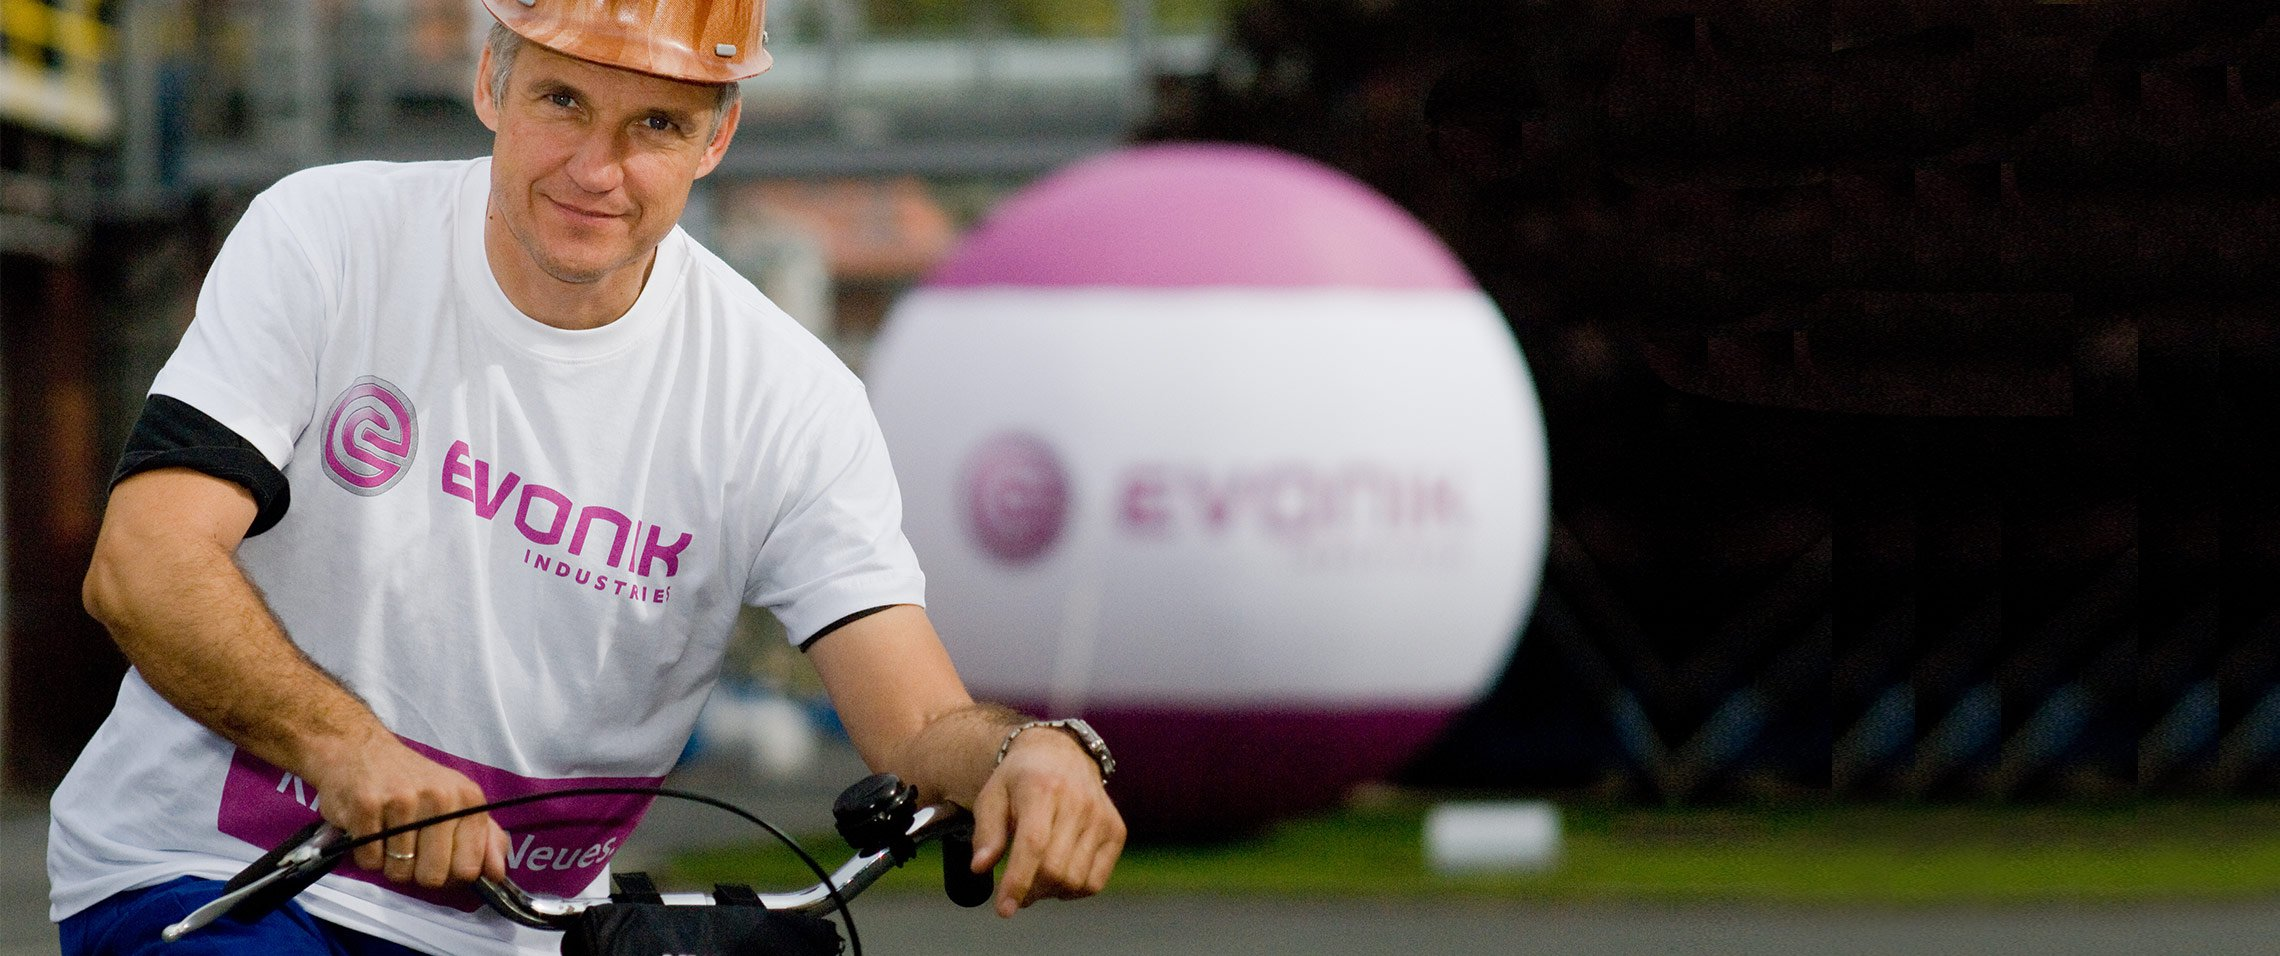 why-evonik-flexibility-hero.jpg